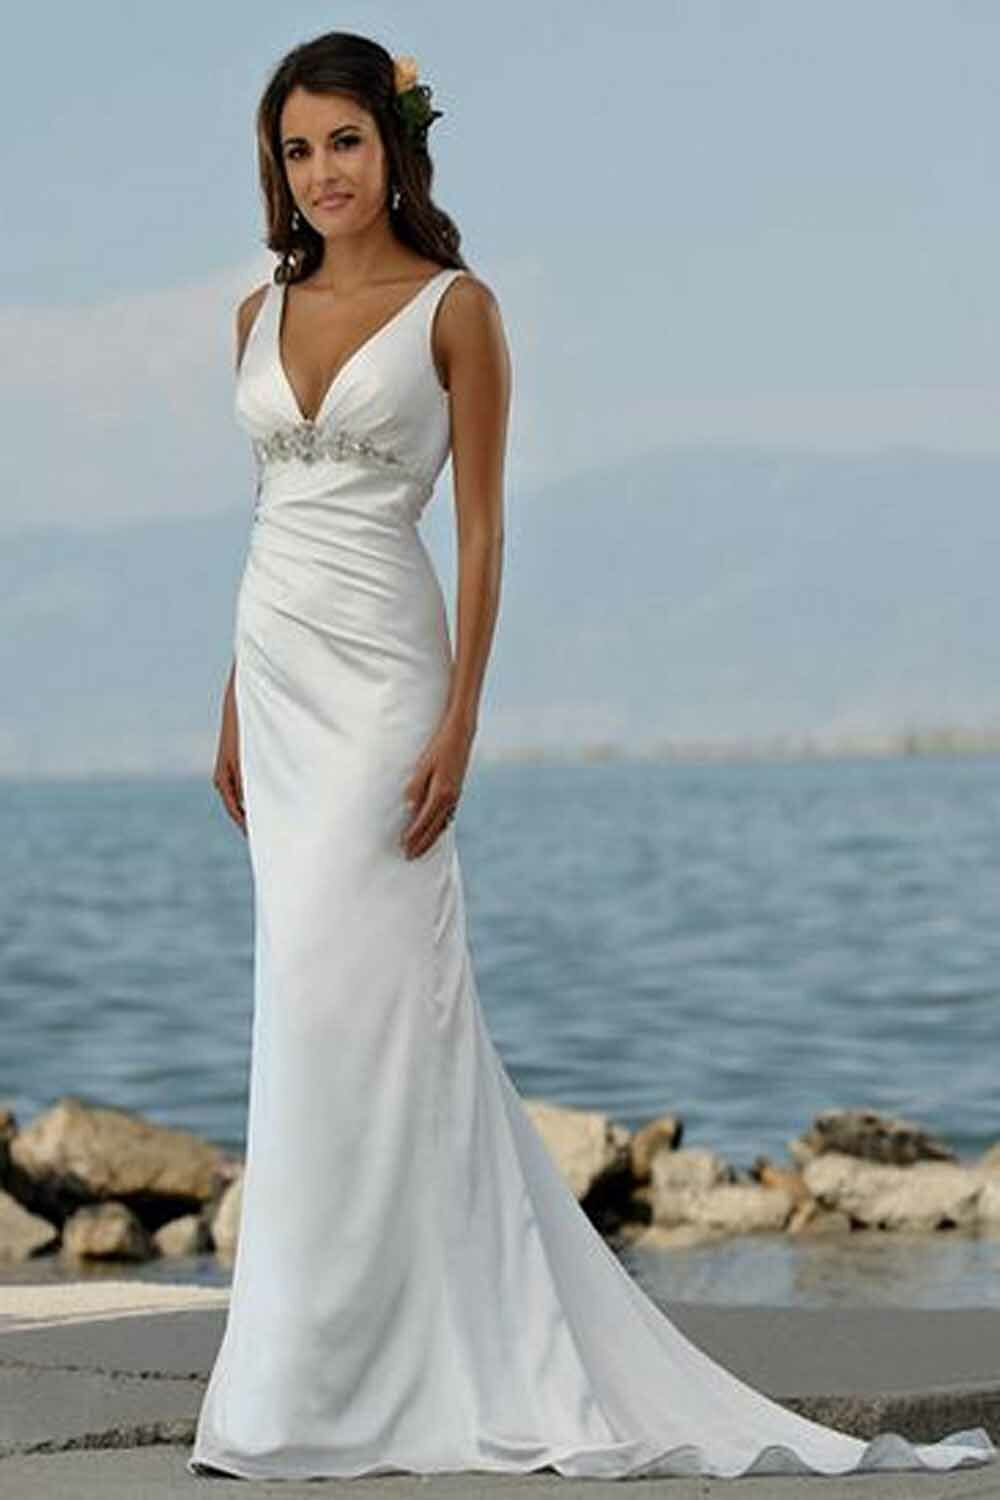 Best summer wedding dresses: Pictures ideas, Guide to buying ...